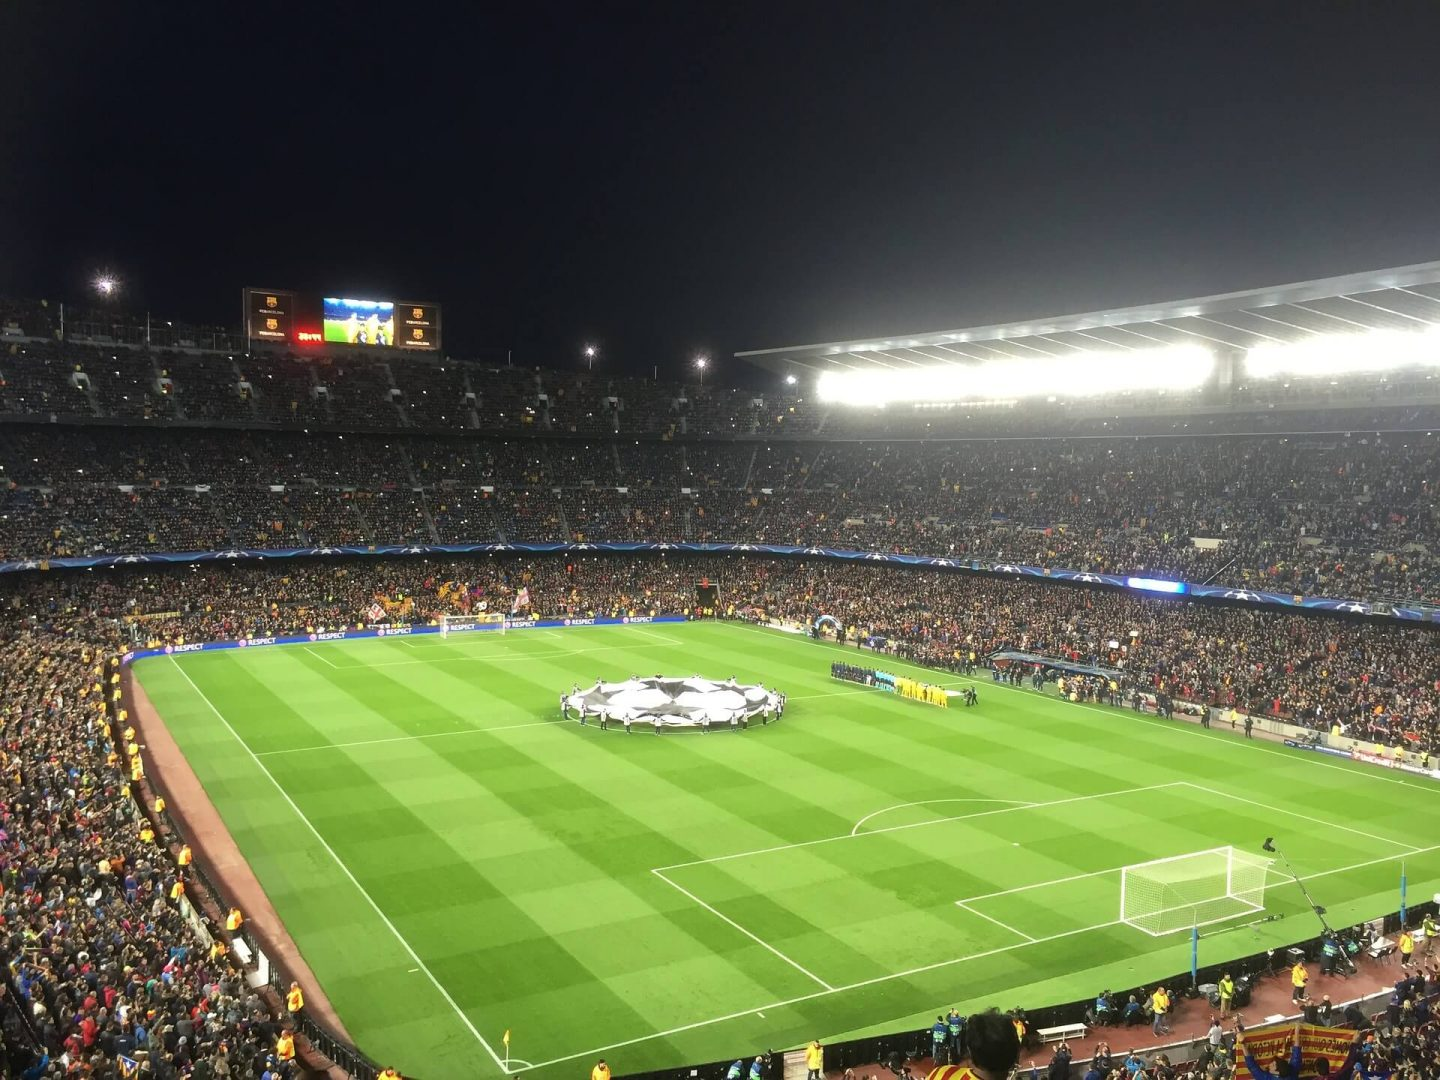 Nothing like Champions League football